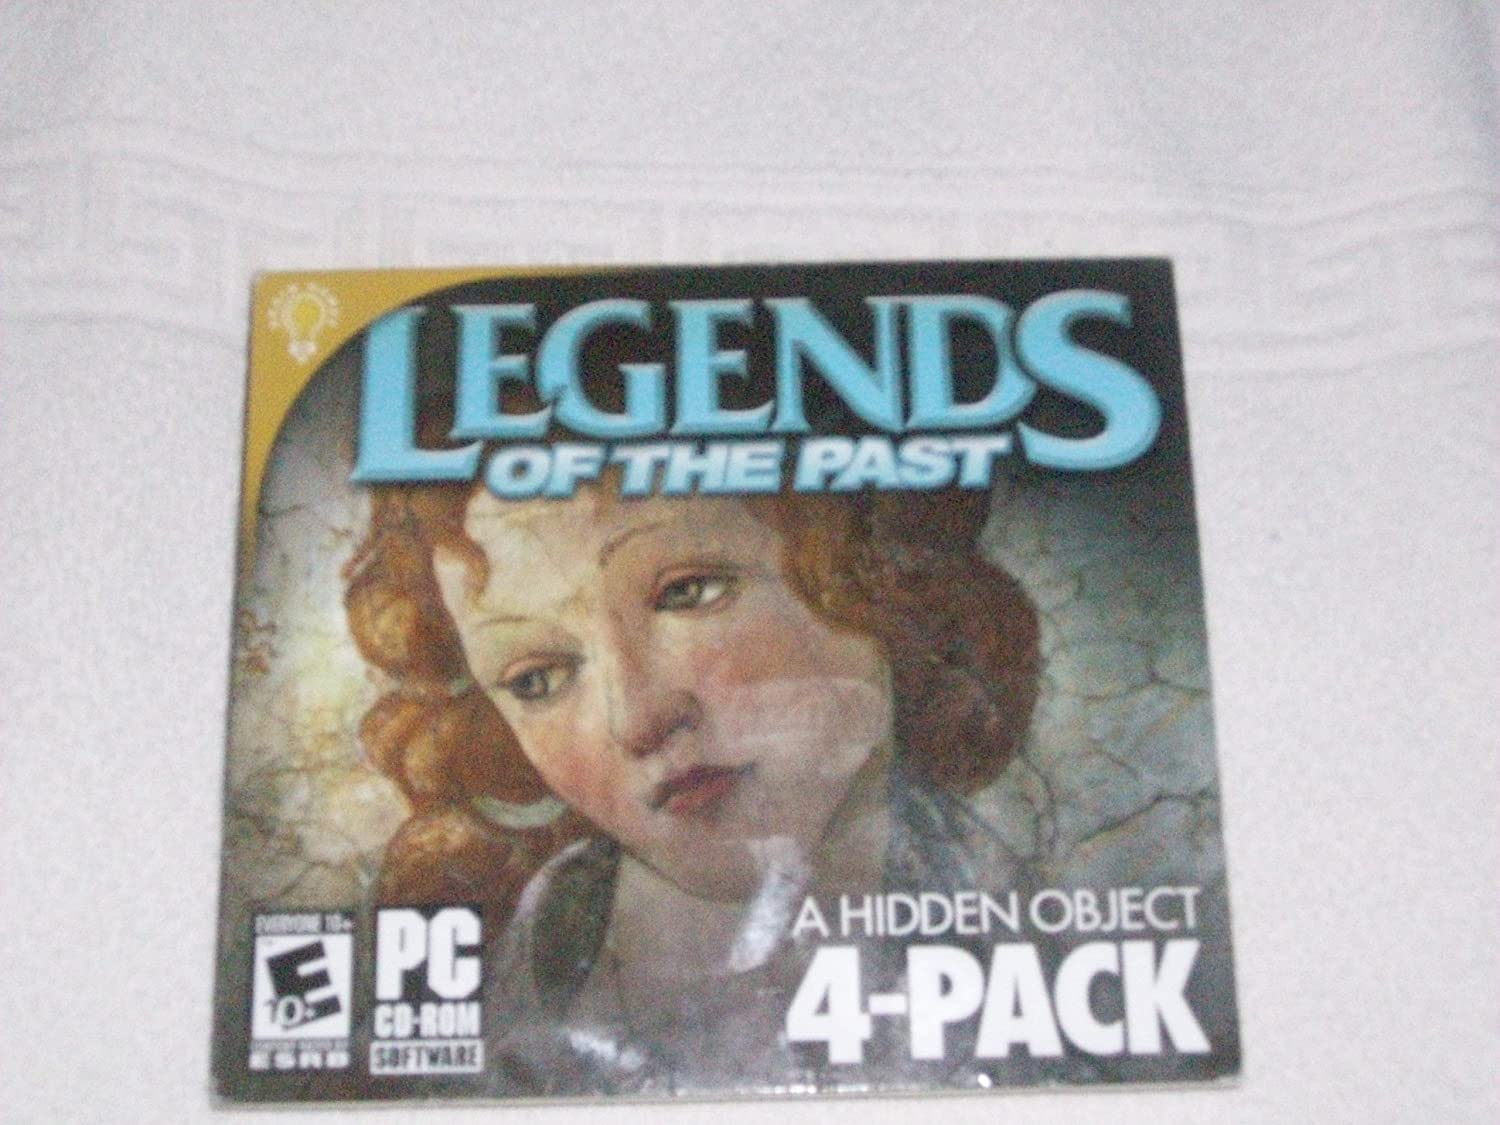 Legends of the Past A Hidden Object 4-Pack